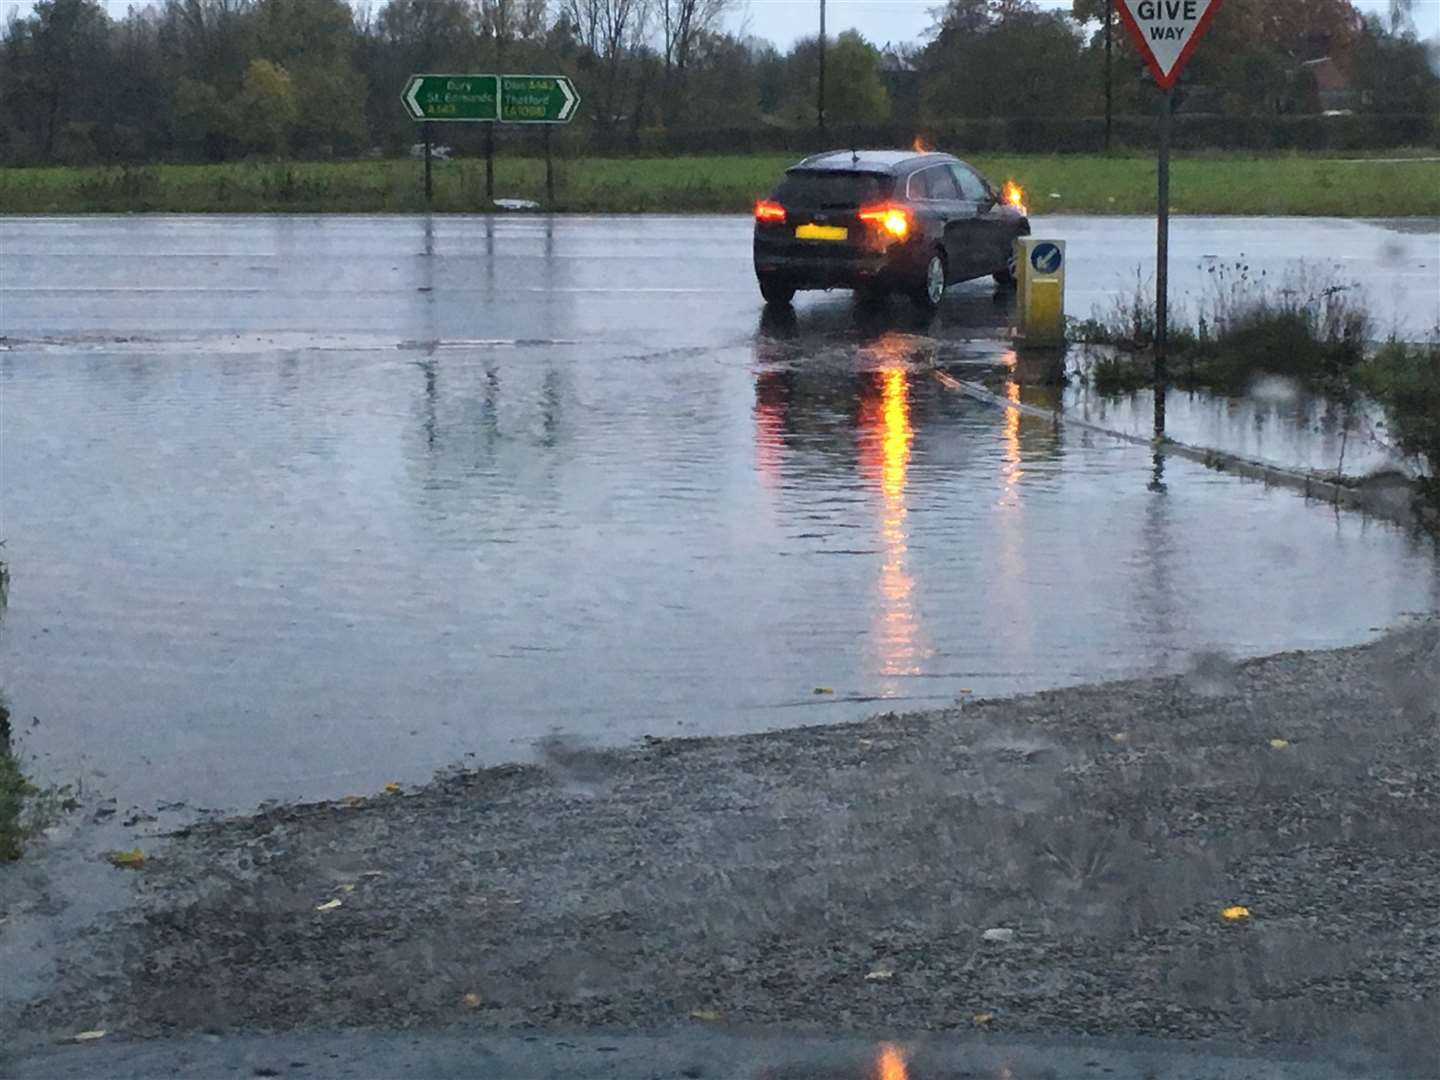 Flooding at the junction of Pakenham Road with the A143 at Ixworth (21536416)